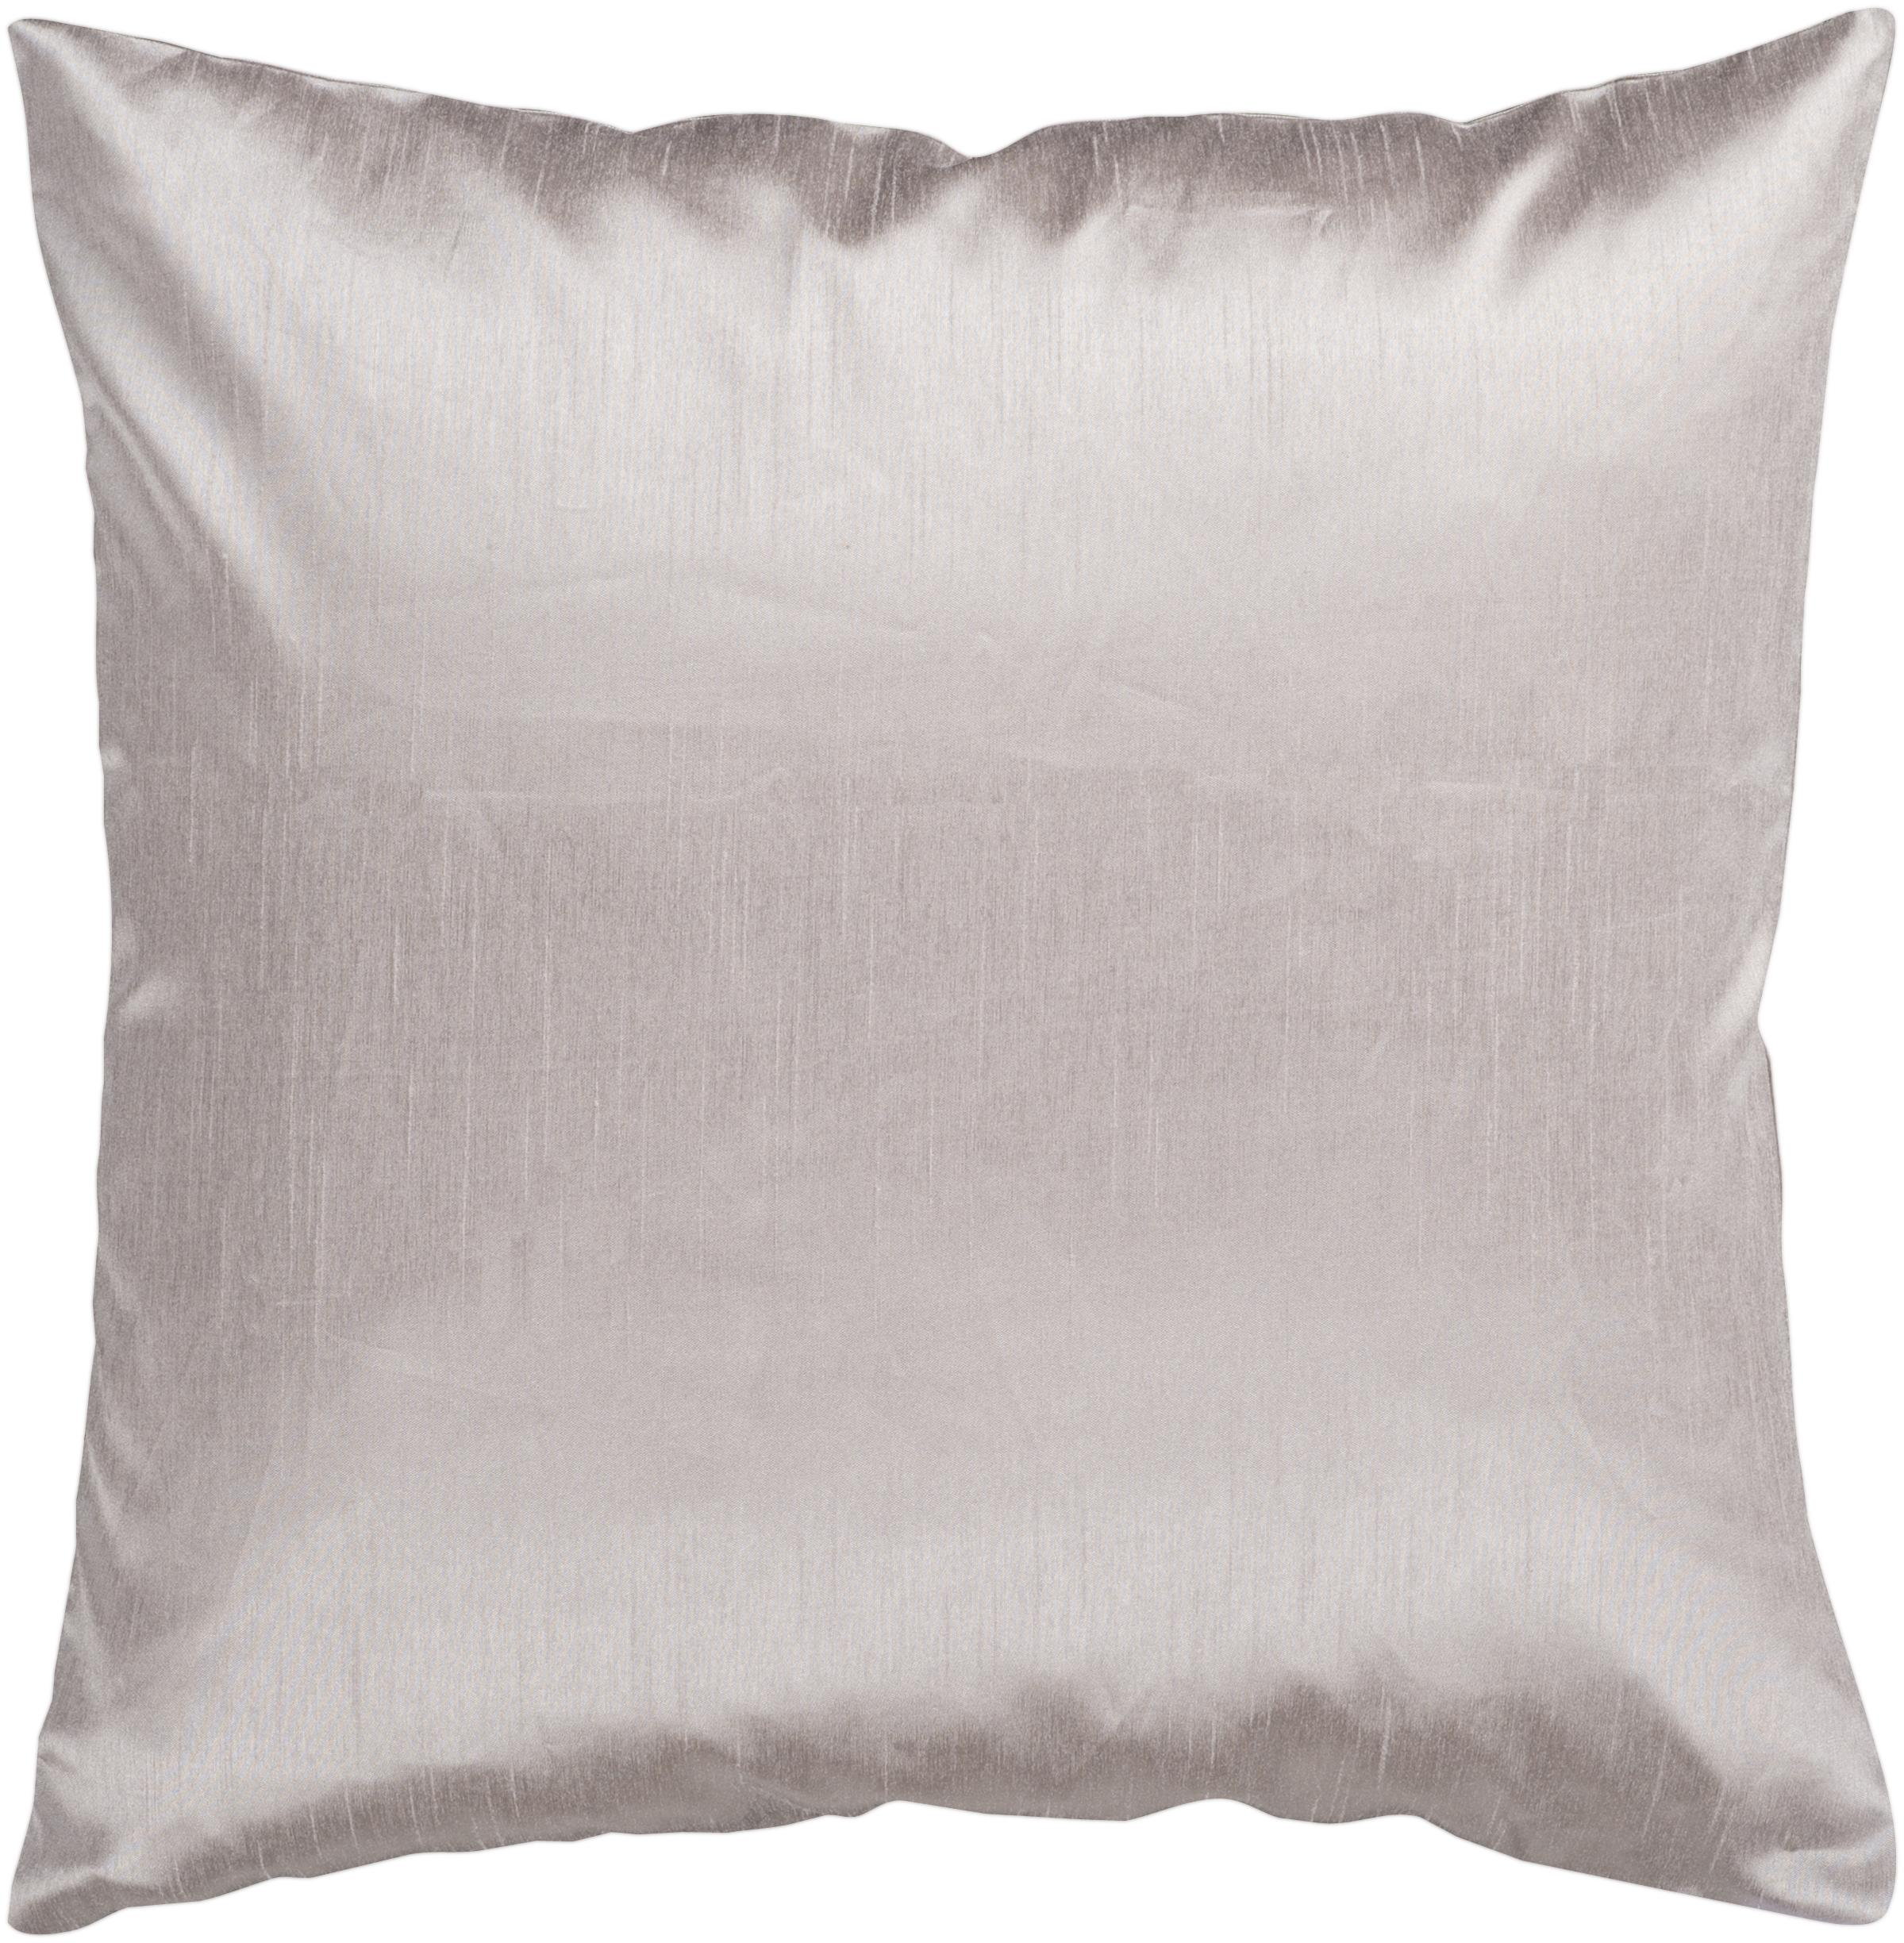 "Surya Pillows 22"" x 22"" Pillow - Item Number: HH044-2222P"